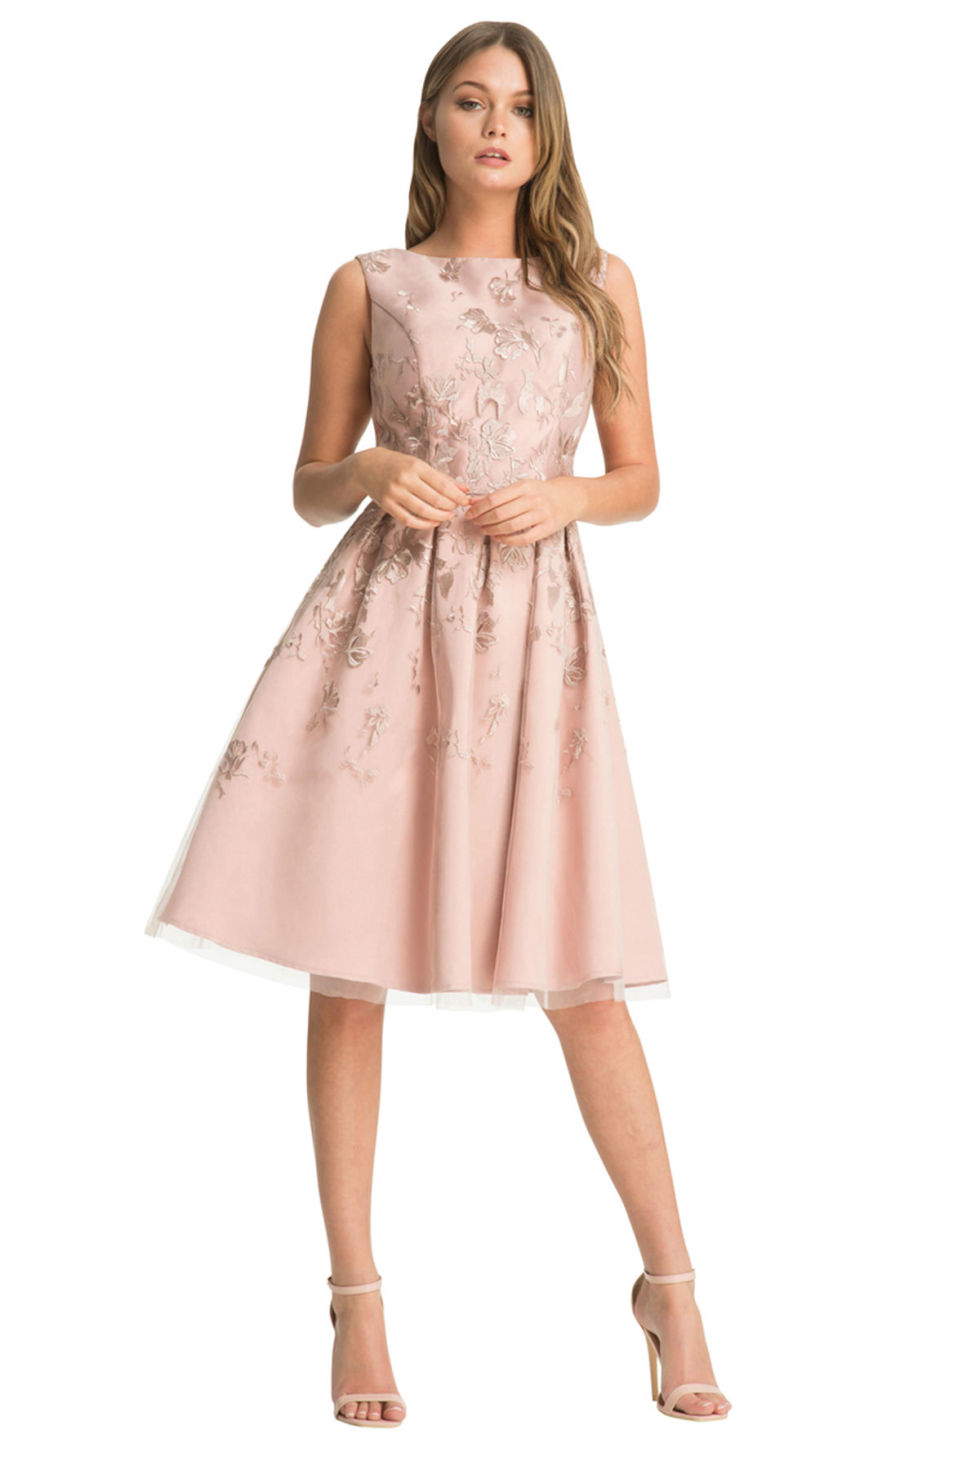 The dress gallery - The Dress Gallery 59